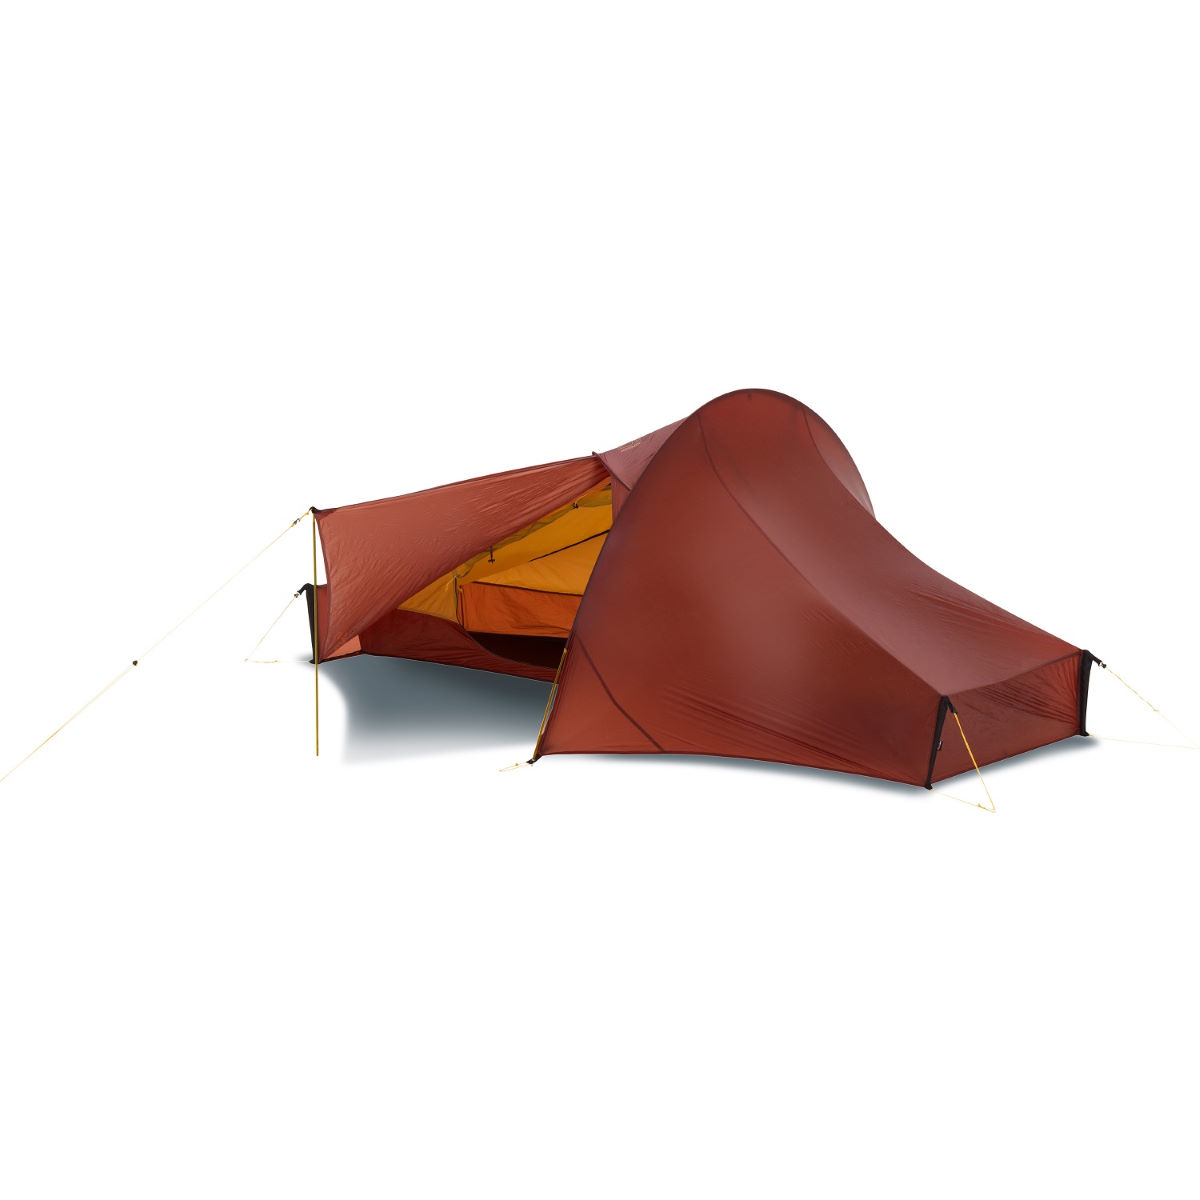 Nordisk Nordisk Telemark 2 Ultra Light Weight Tent   Tents